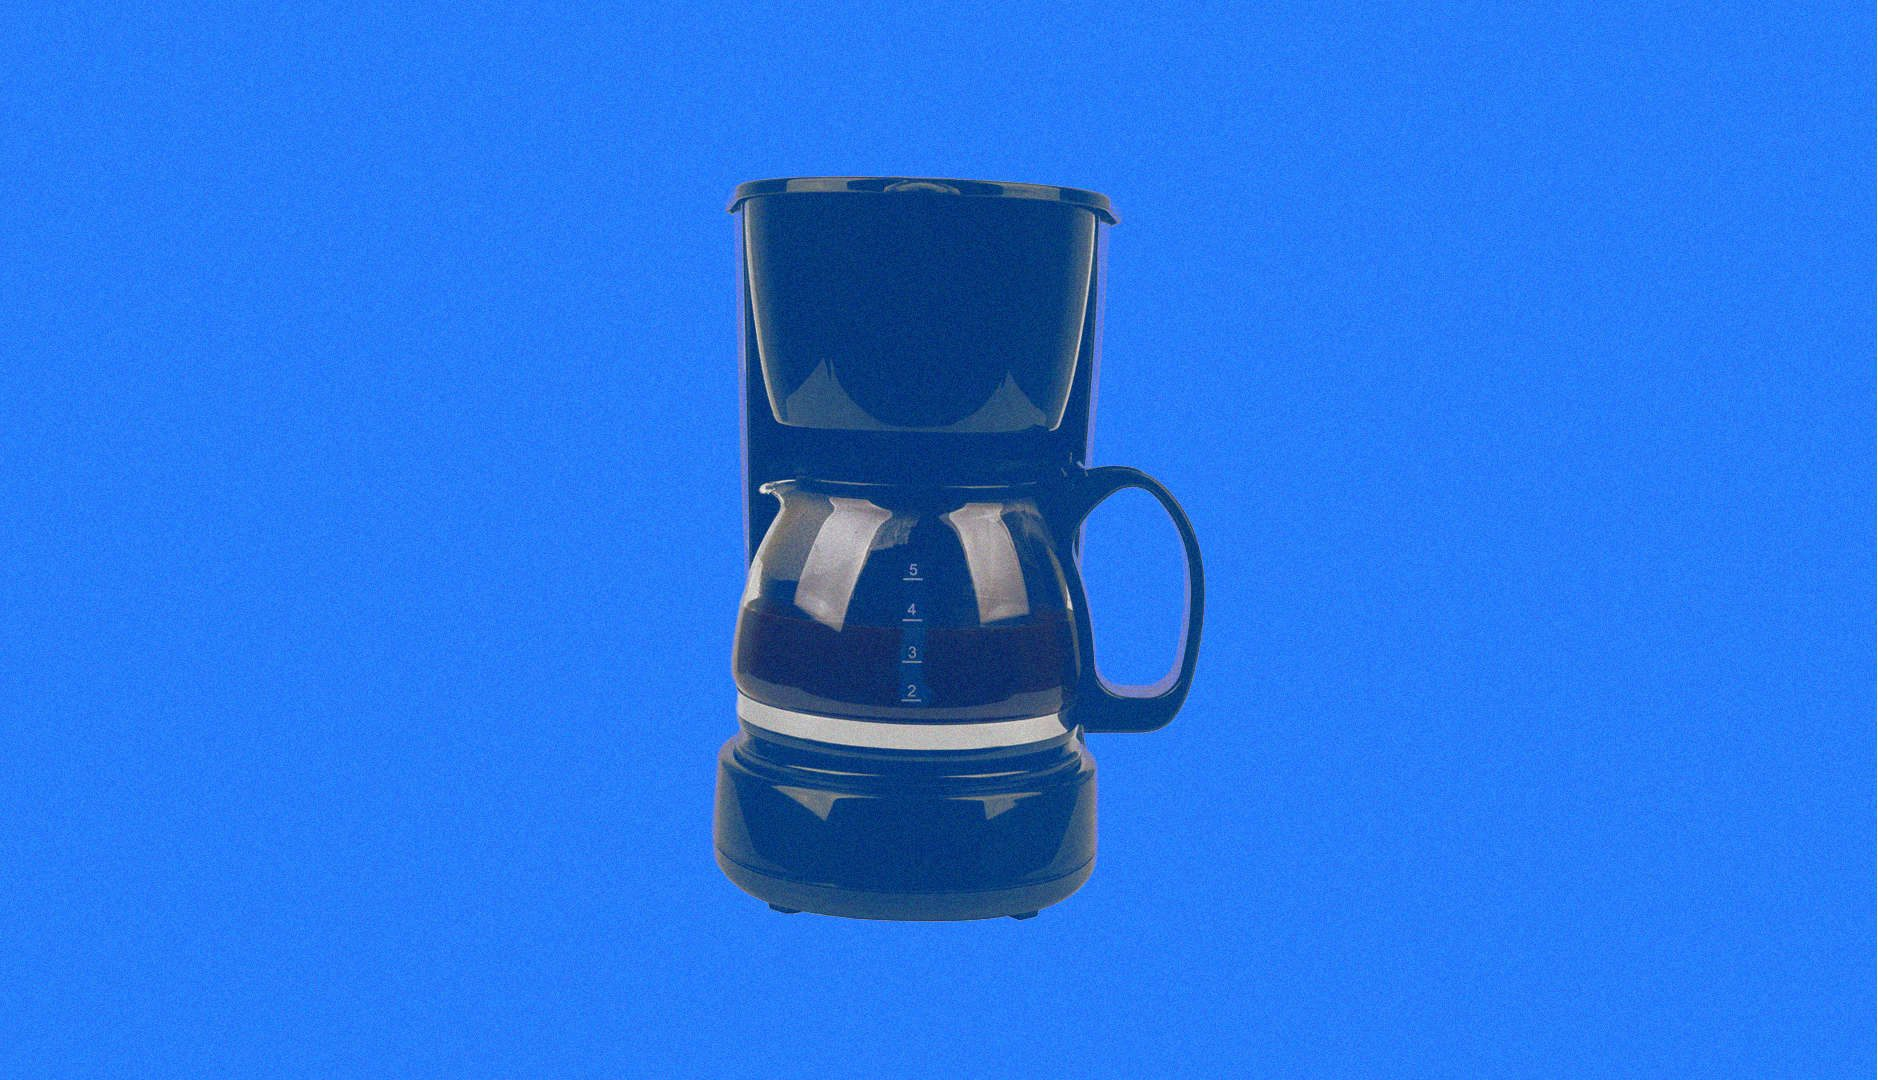 coffee pot on blue background